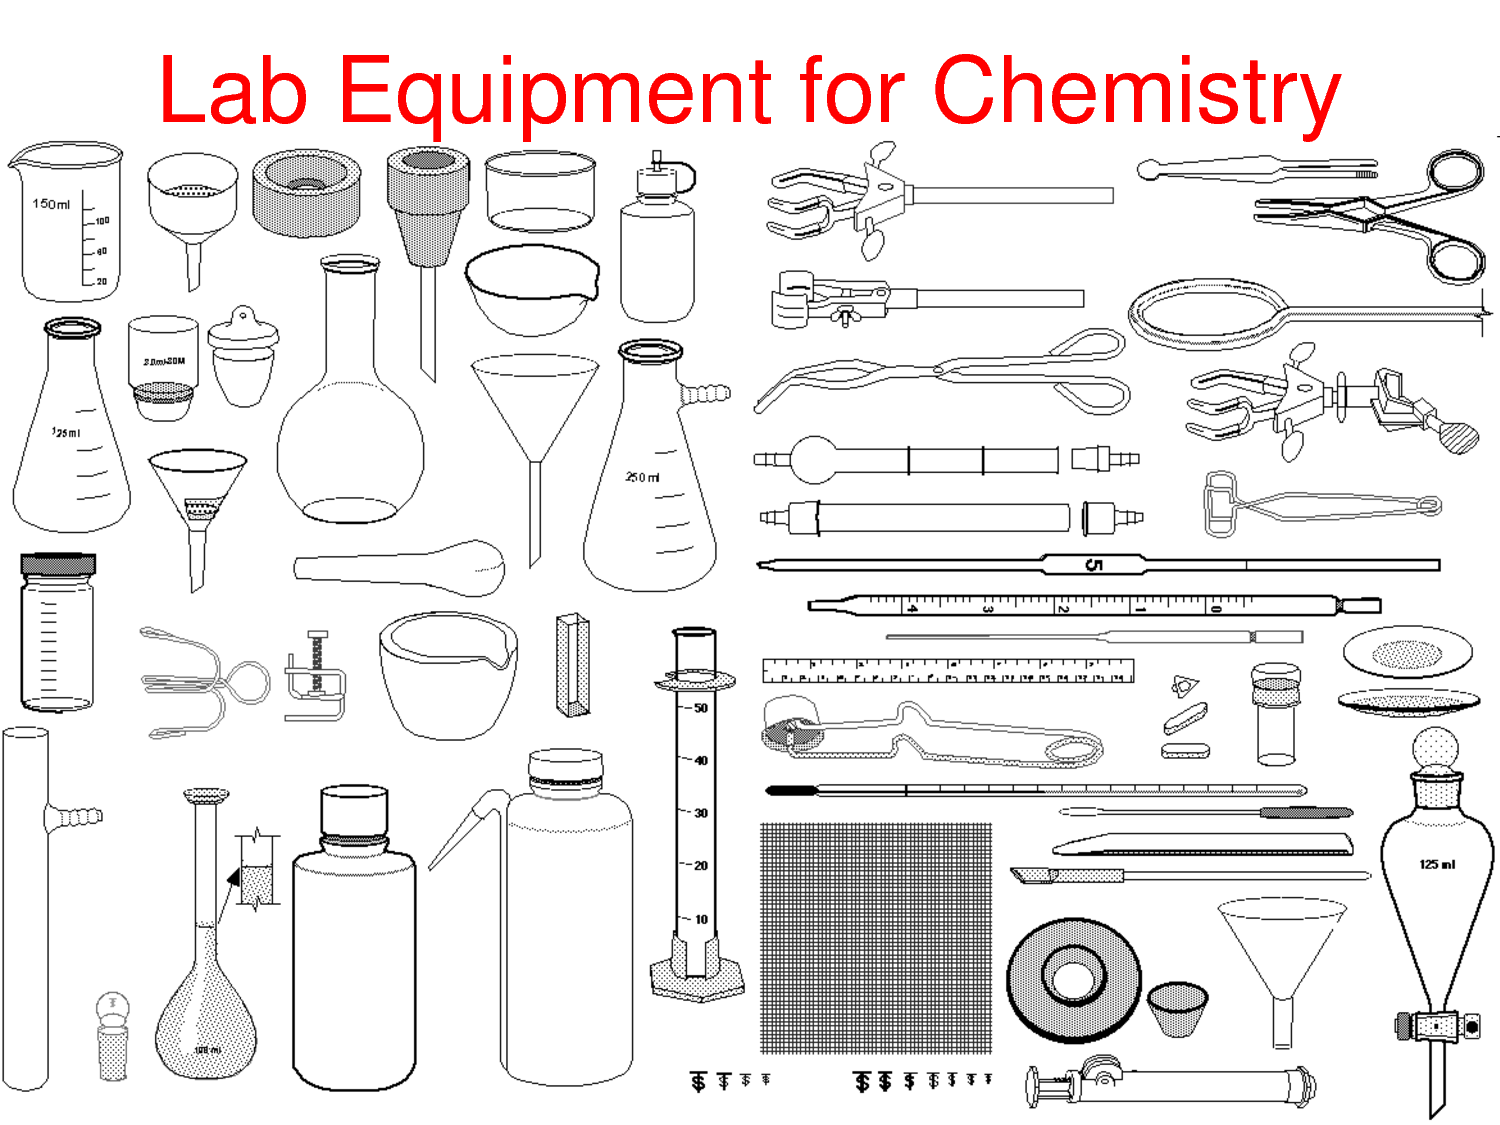 worksheet Laboratory Equipment Worksheet 10 best images about measurement on pinterest student image search and lab equipment